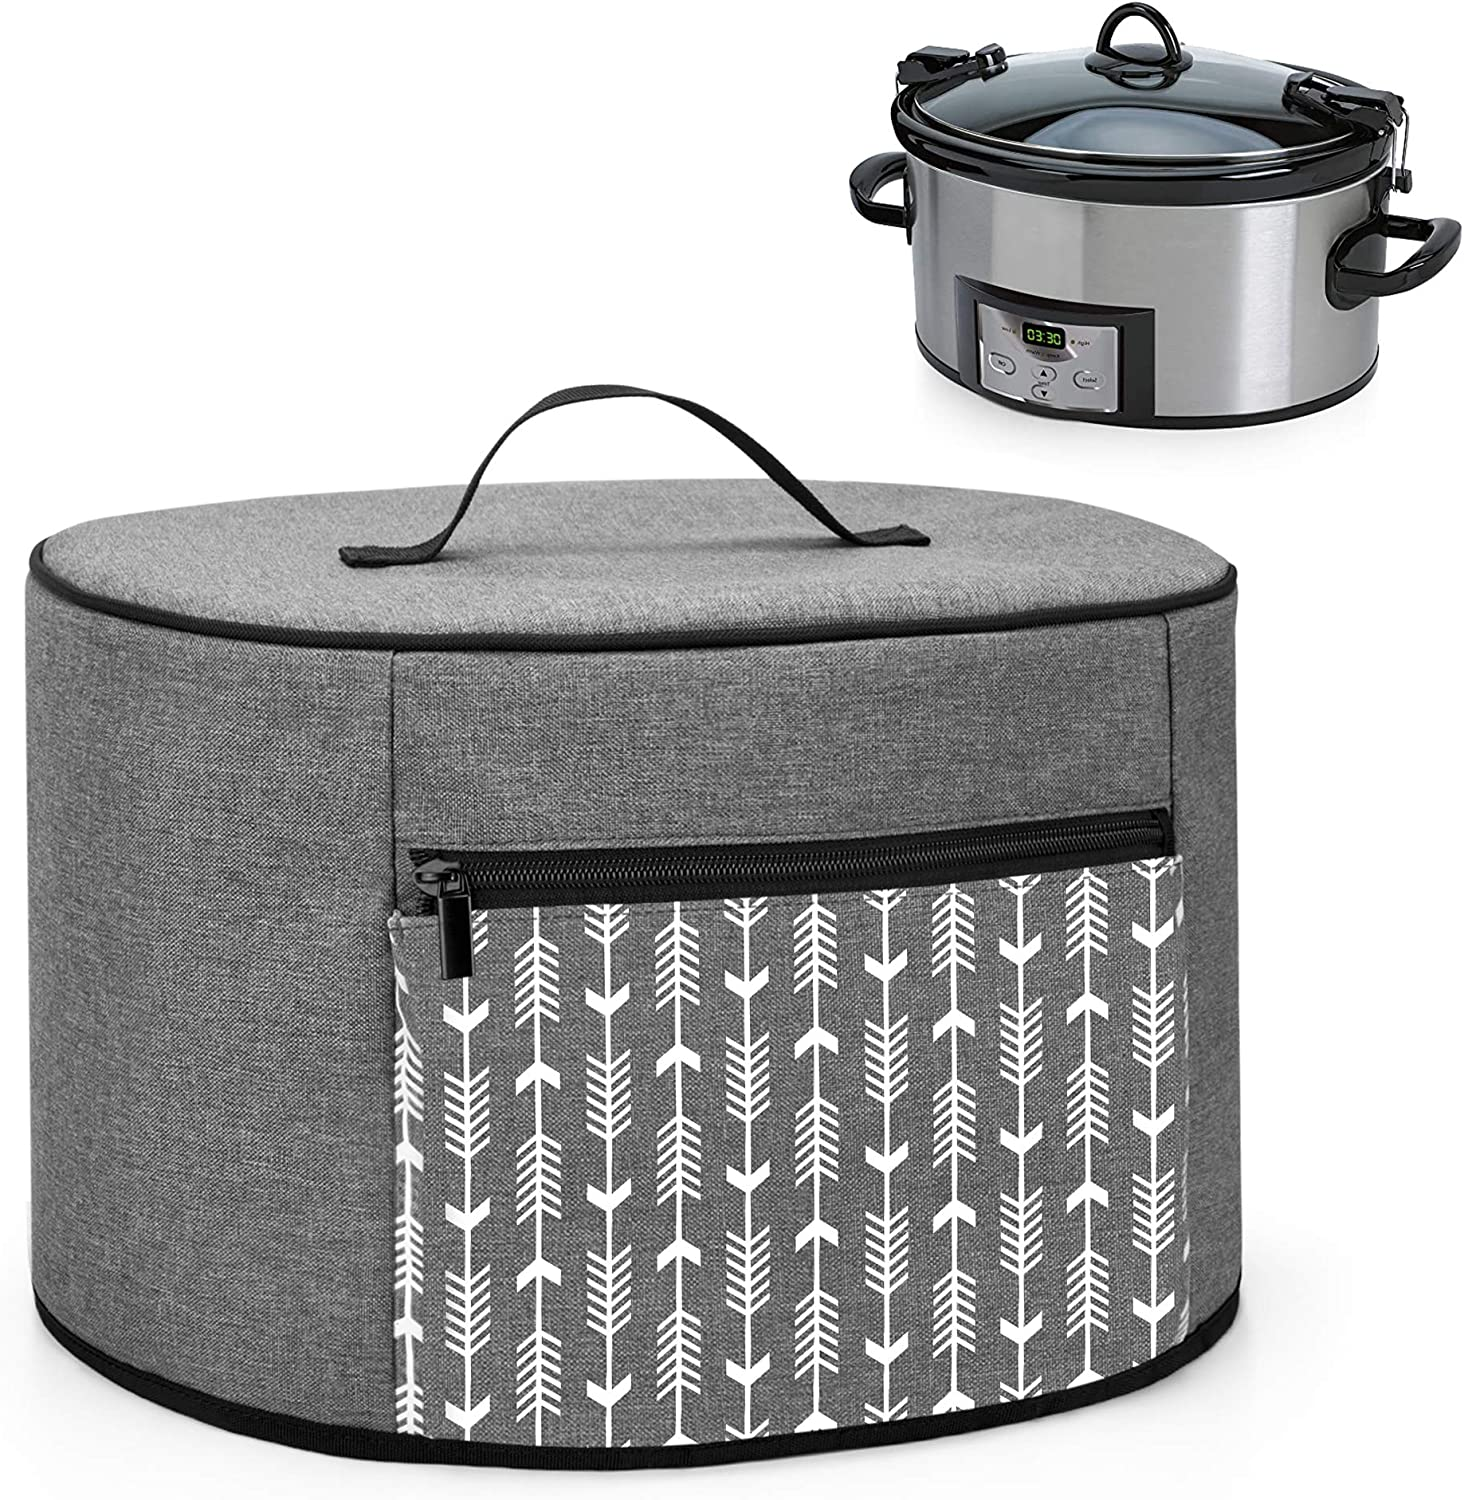 YARWO Slow Cooker Dust Cover Compatible with Crock Pot and Hamilton Beach 6-8 qt Slow Cooker, Dust Free Cover with Zipper Pocket and Wipe Clean Liner, Gray with Arrow